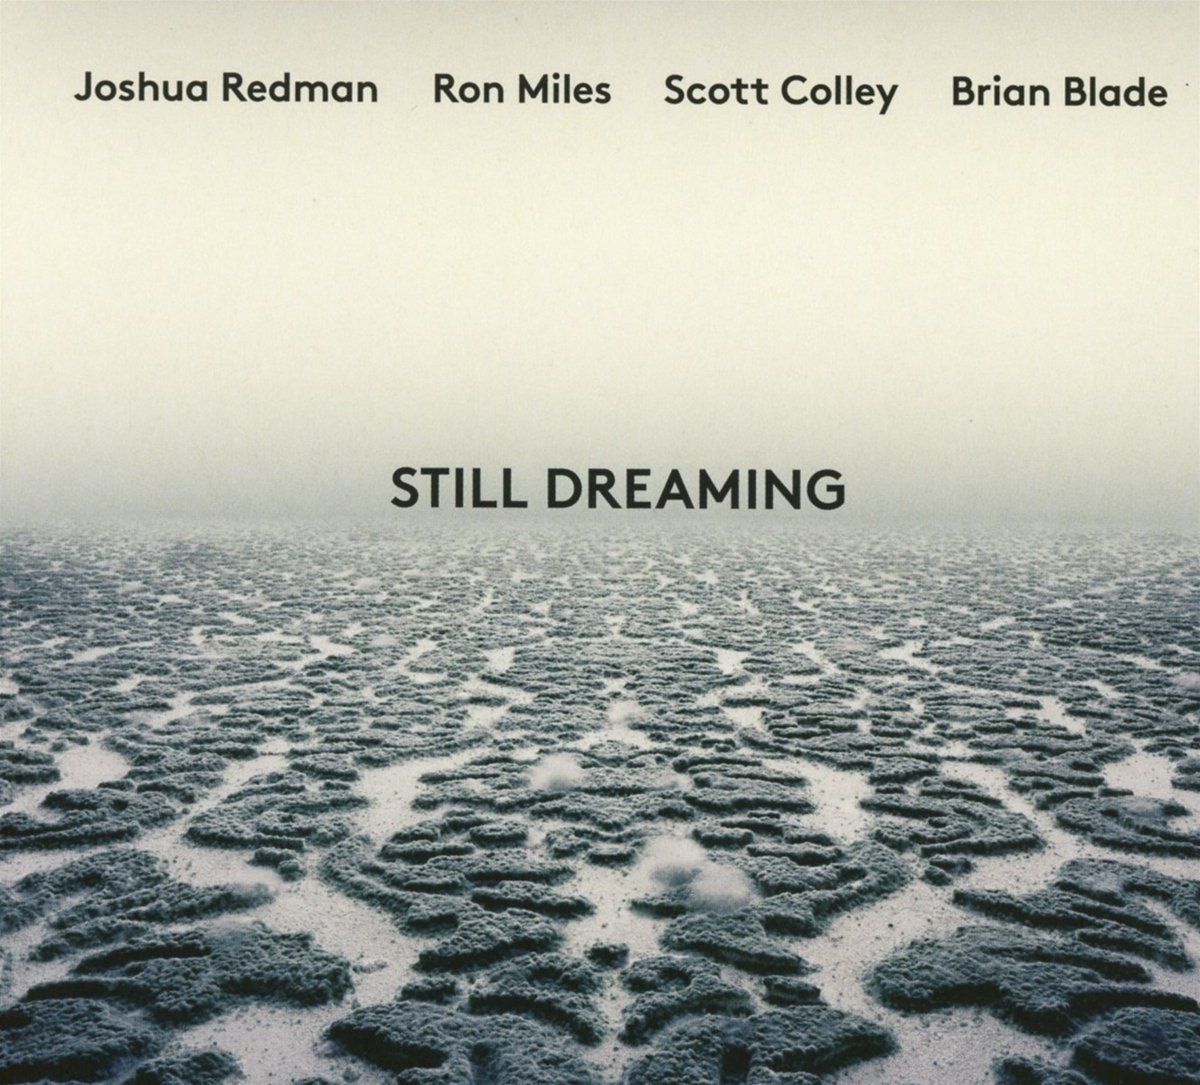 Still Dreaming feat. Ron Miles, Scott Colley & Brian Blade